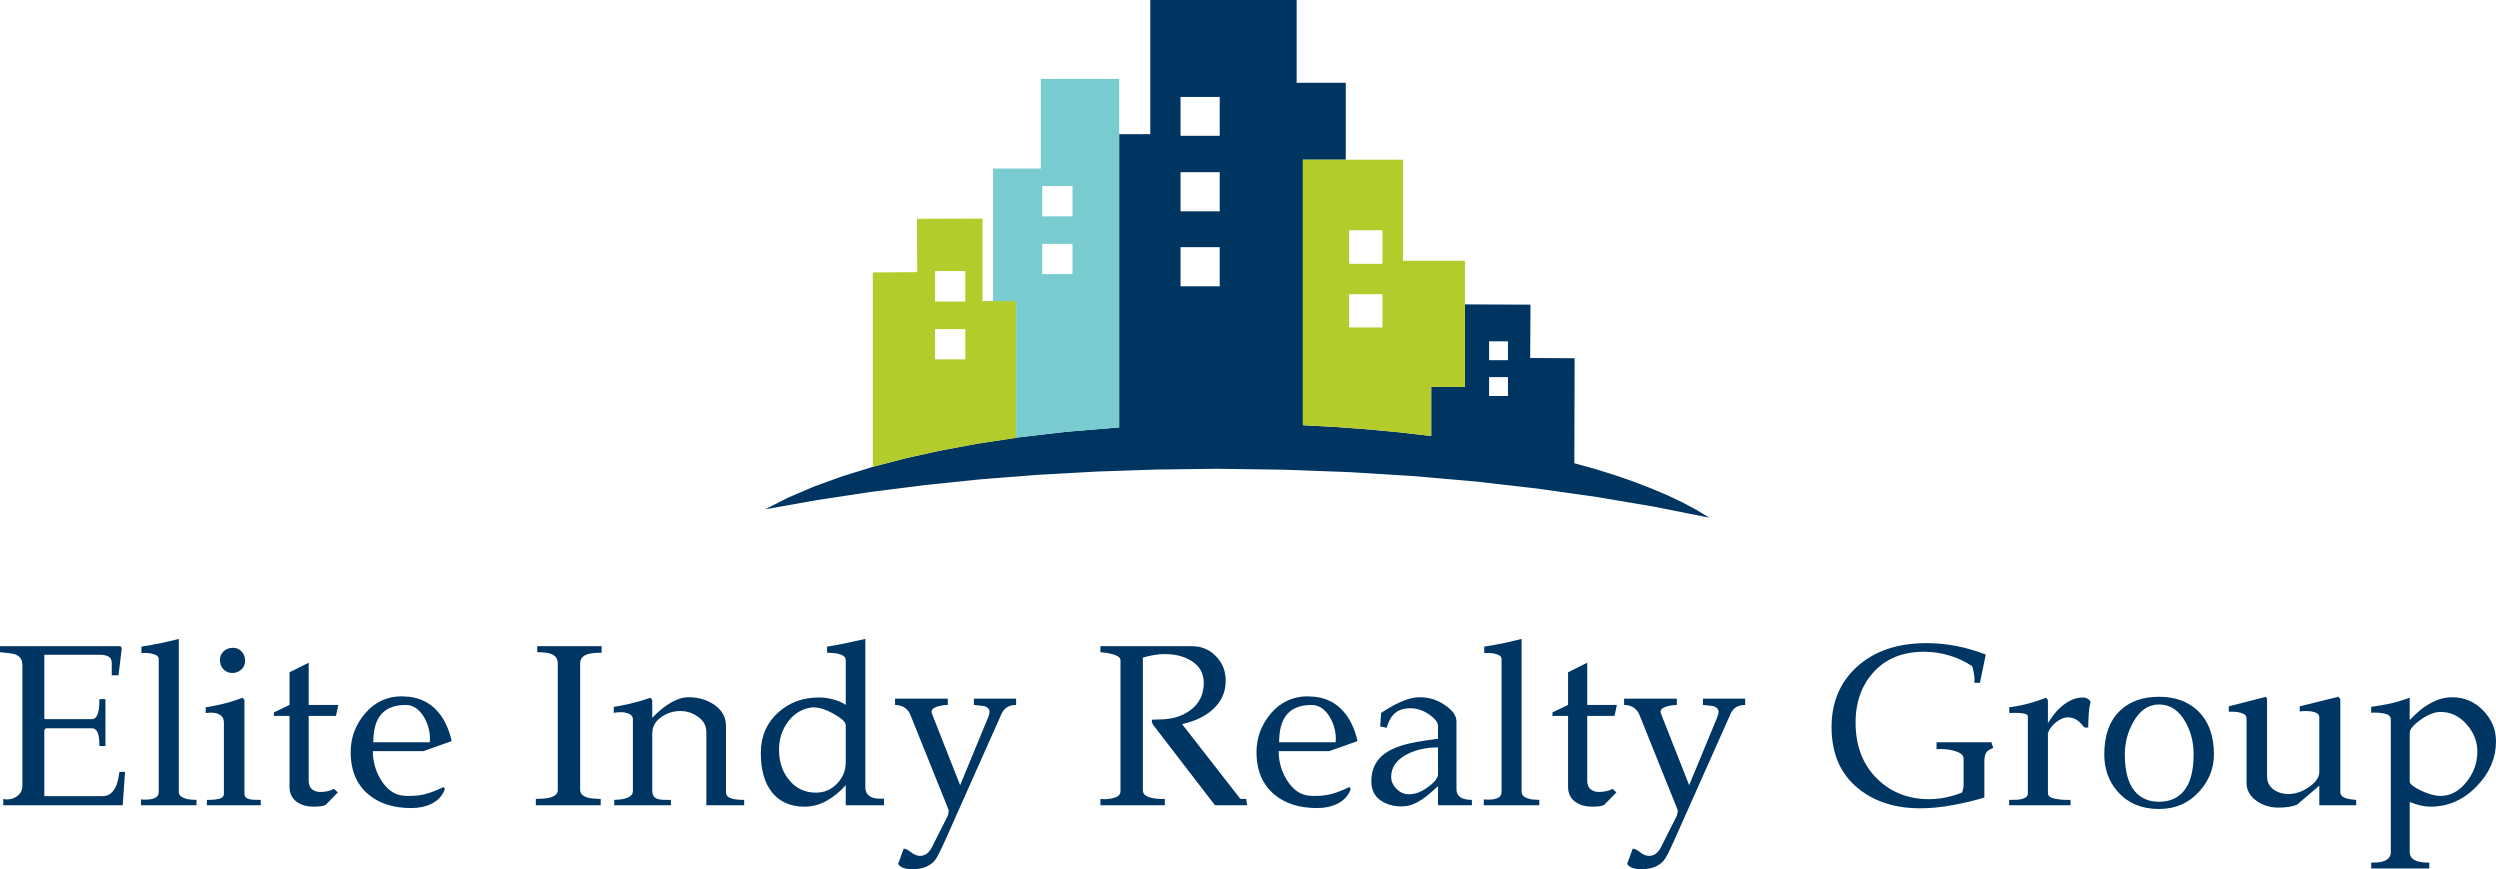 Elite Indy Realty Group